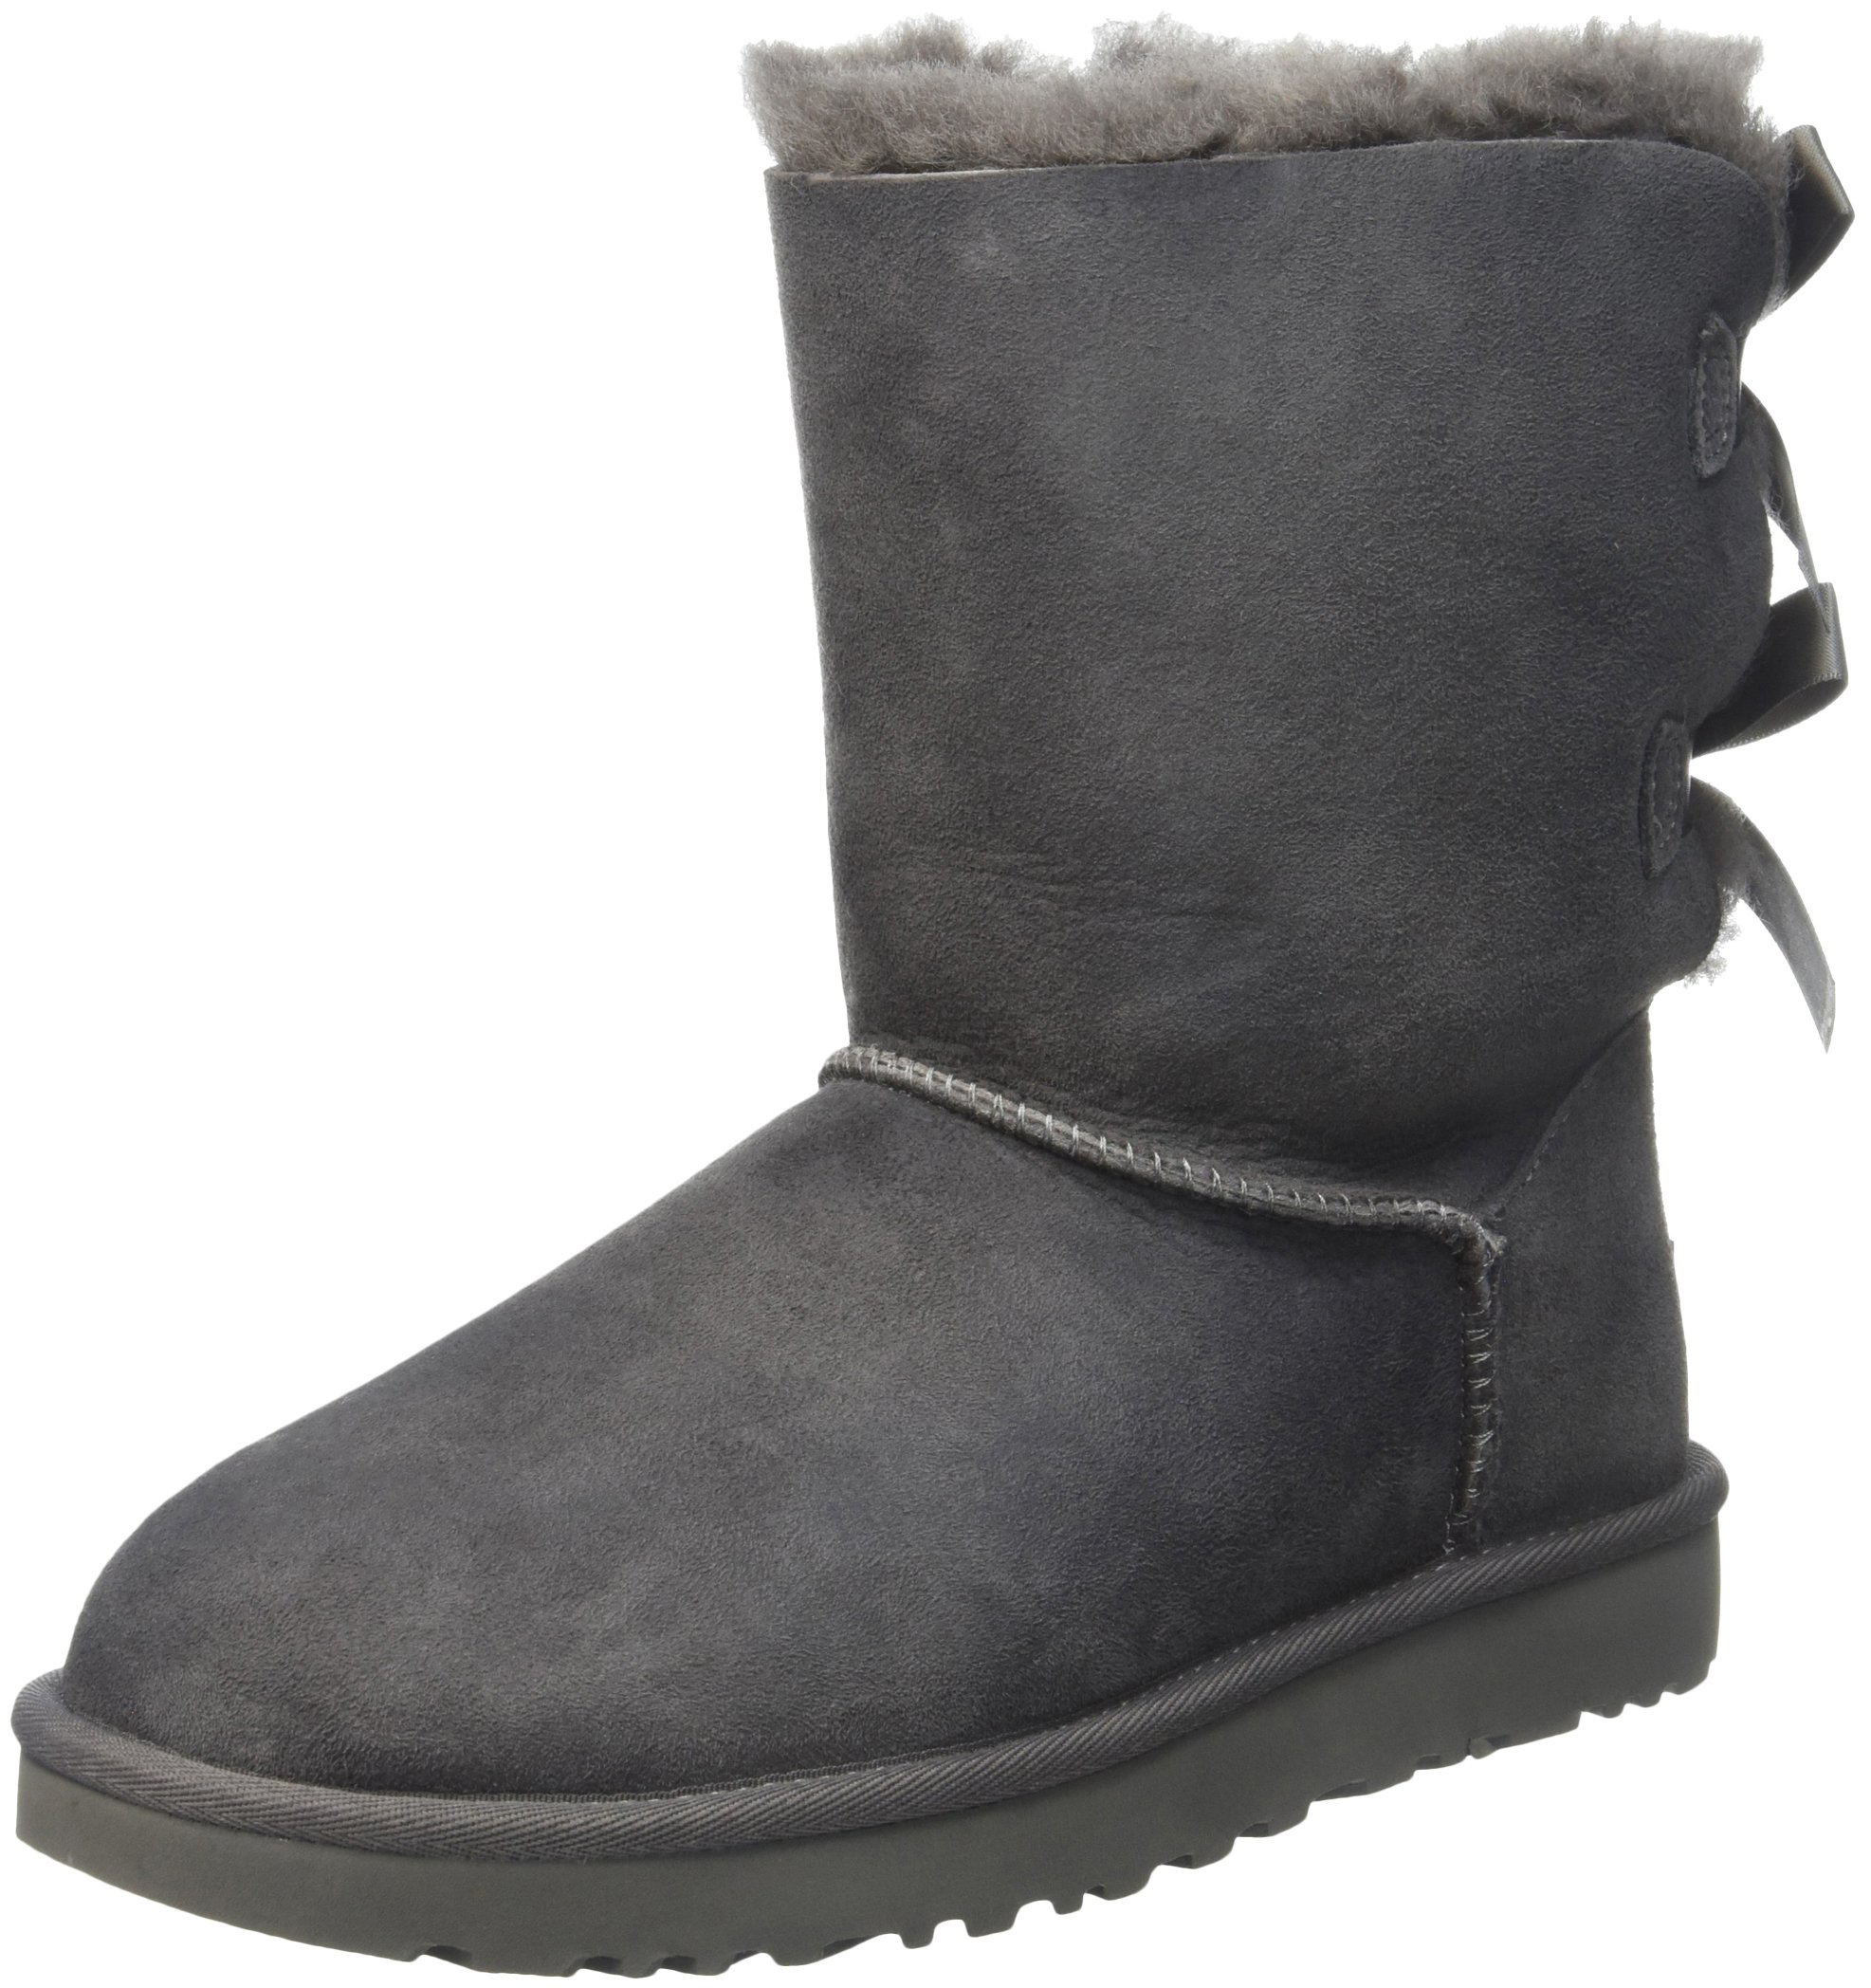 UGG Women's Bailey Bow II Winter Boot, Grey, 8 M US